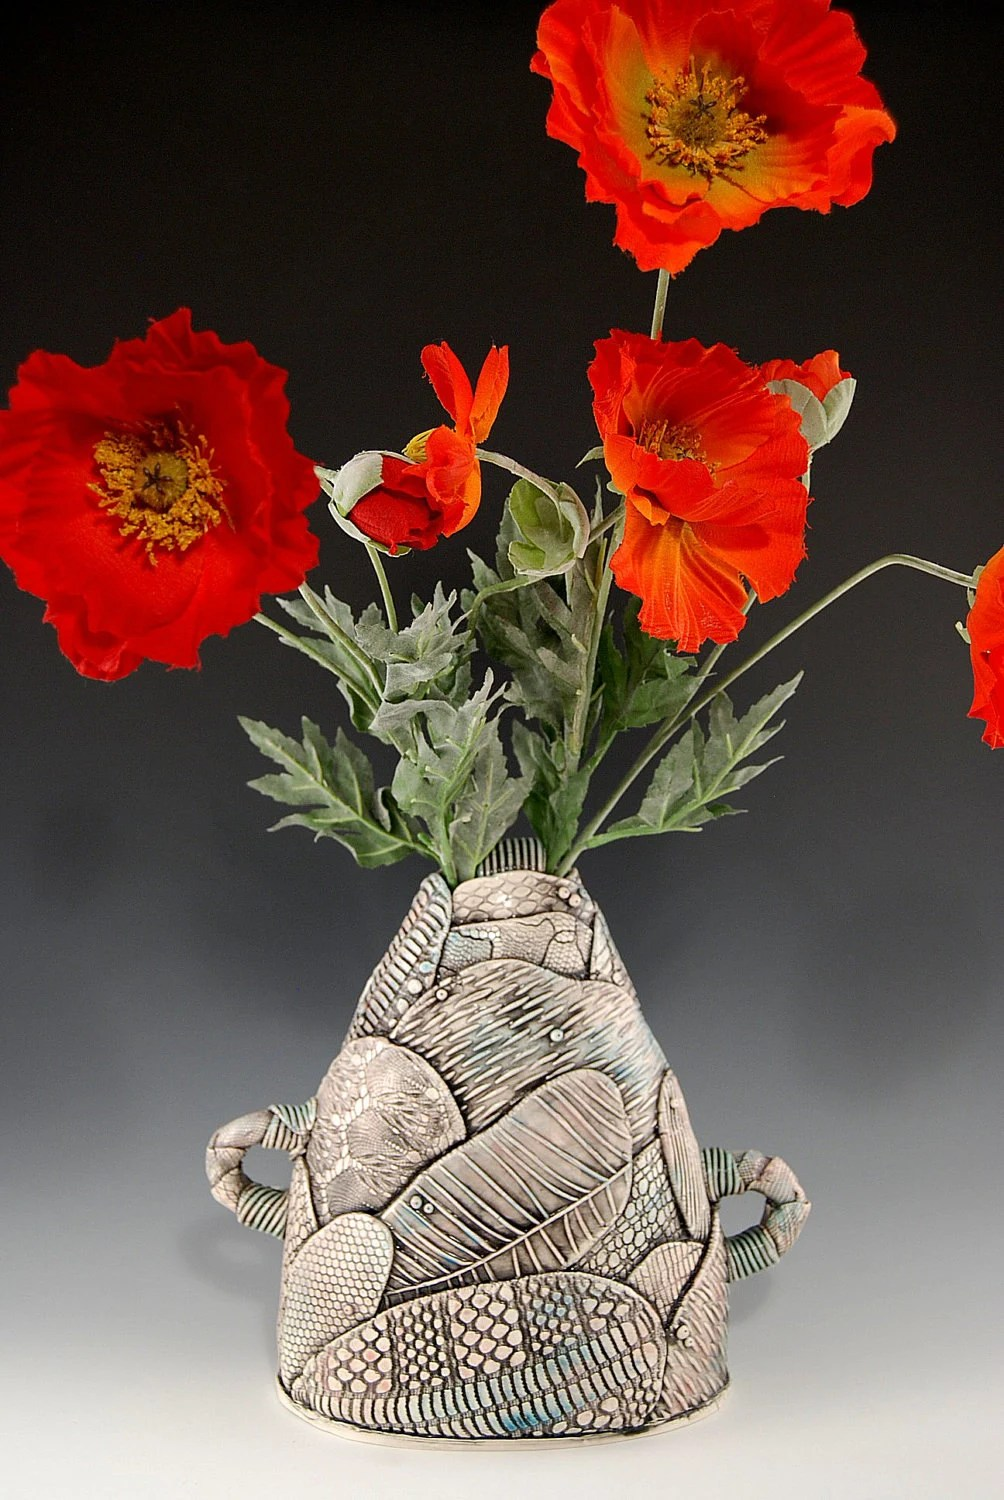 Patchwork Vase with Poppy Flowers